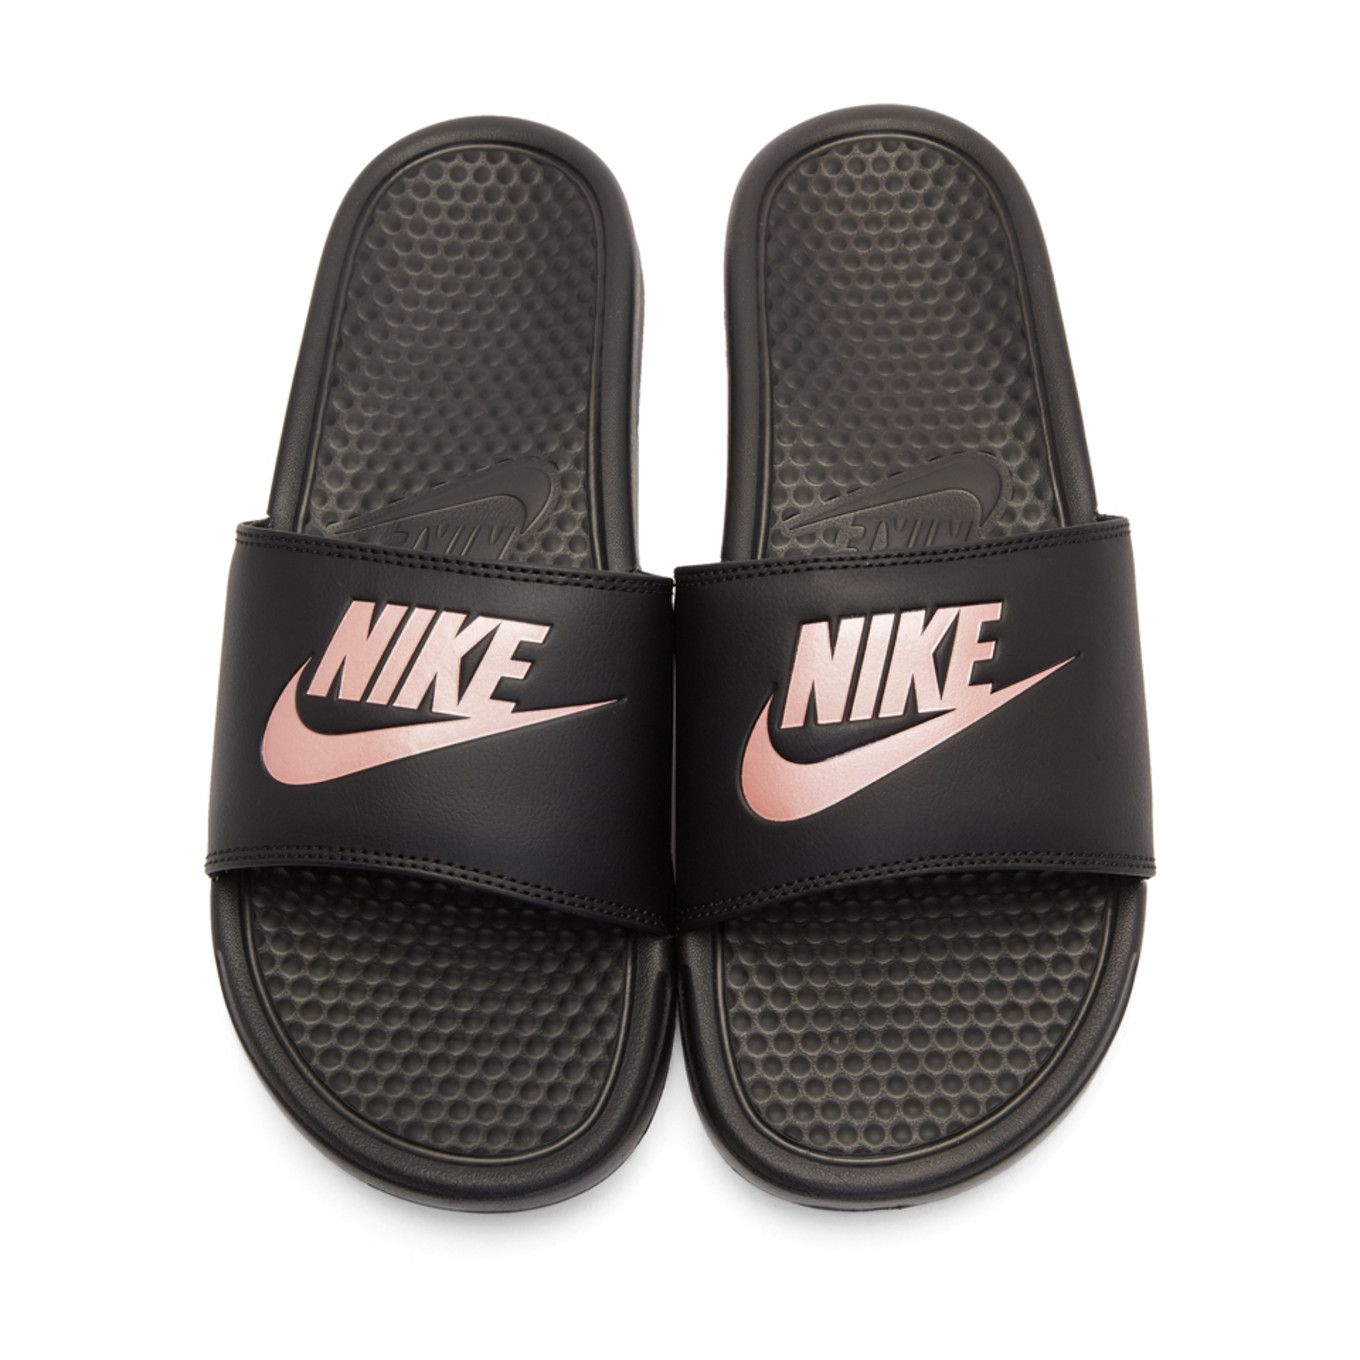 Slide into Summer with these Sparkling Nike Slide Sandals